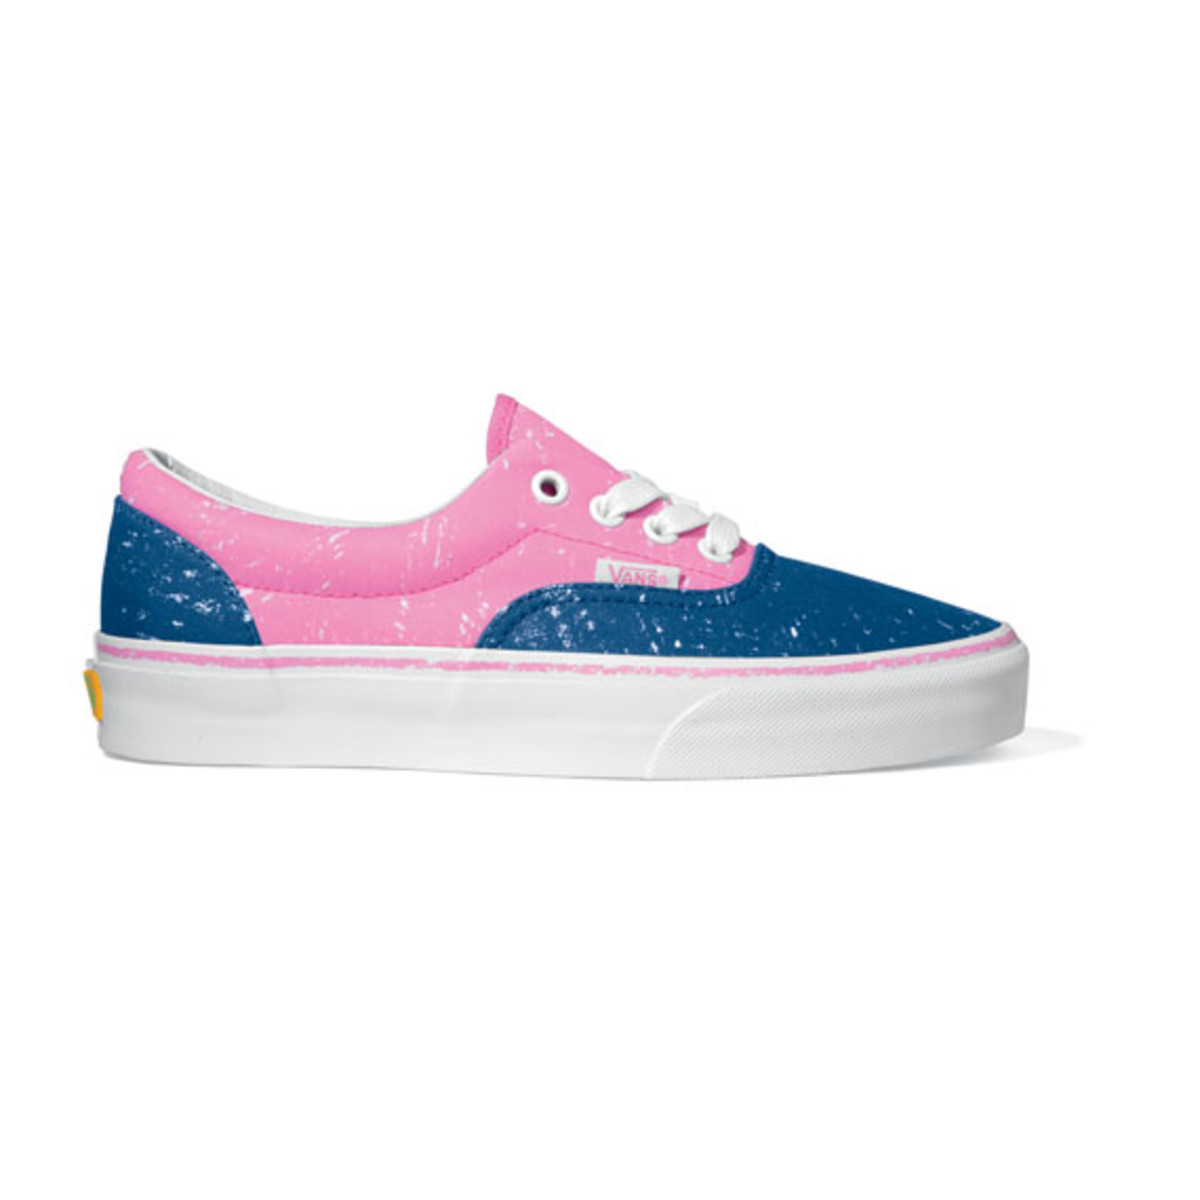 716fb9d44a7 Crayola x VANS – Colored by Crayola Pack - Freshness Mag